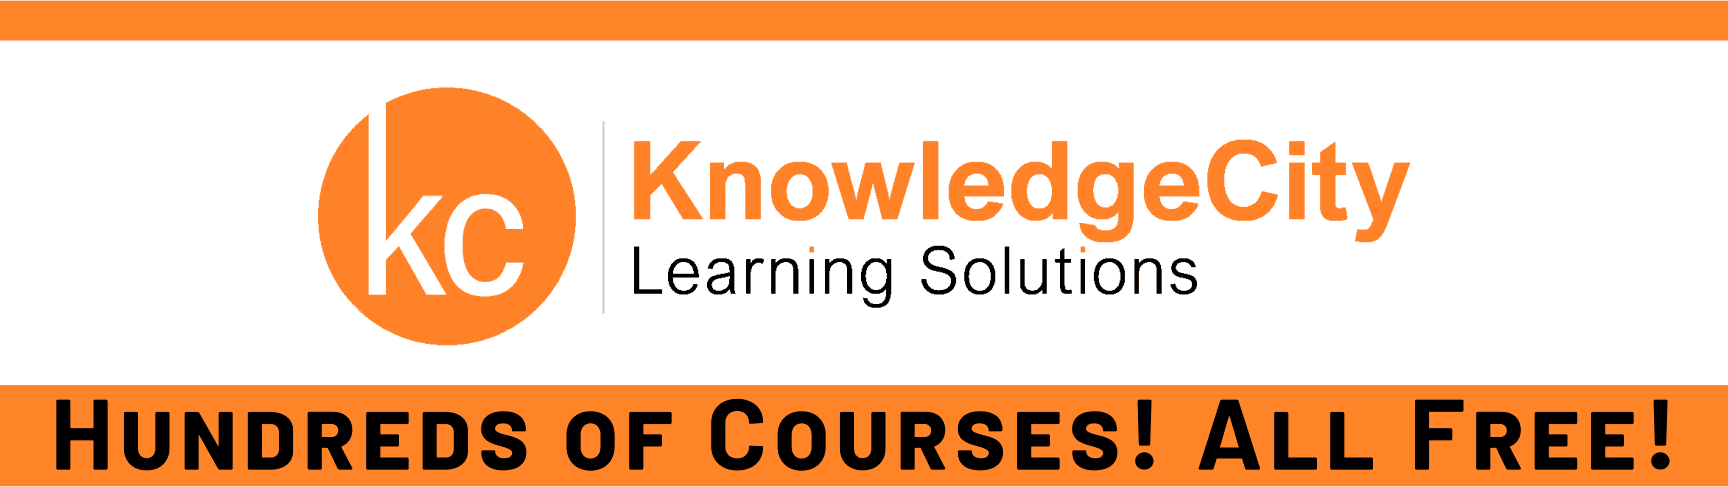 Web Banner for Knowledge City Service